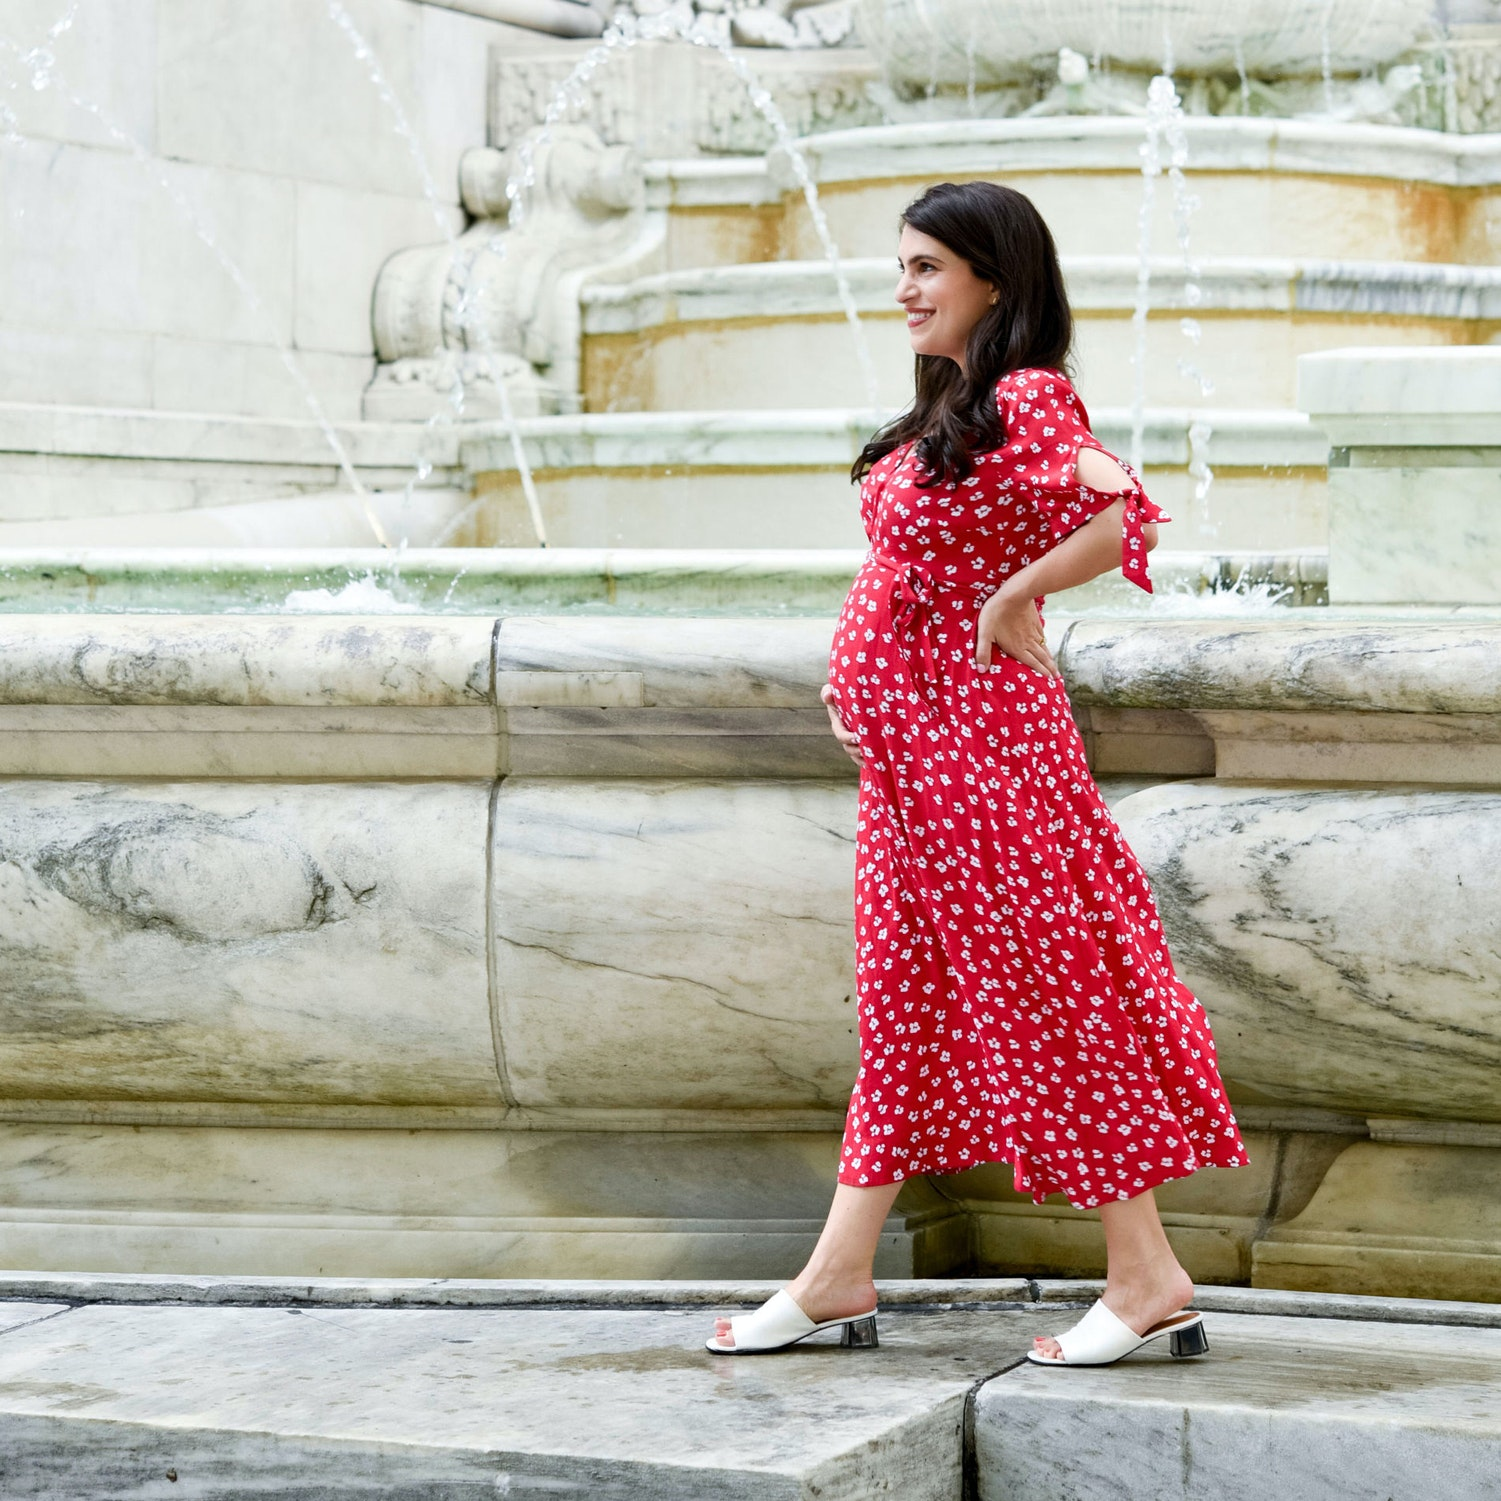 Our Editorial Director's Ultimate Guide to Her Pregnancy Beauty Routine